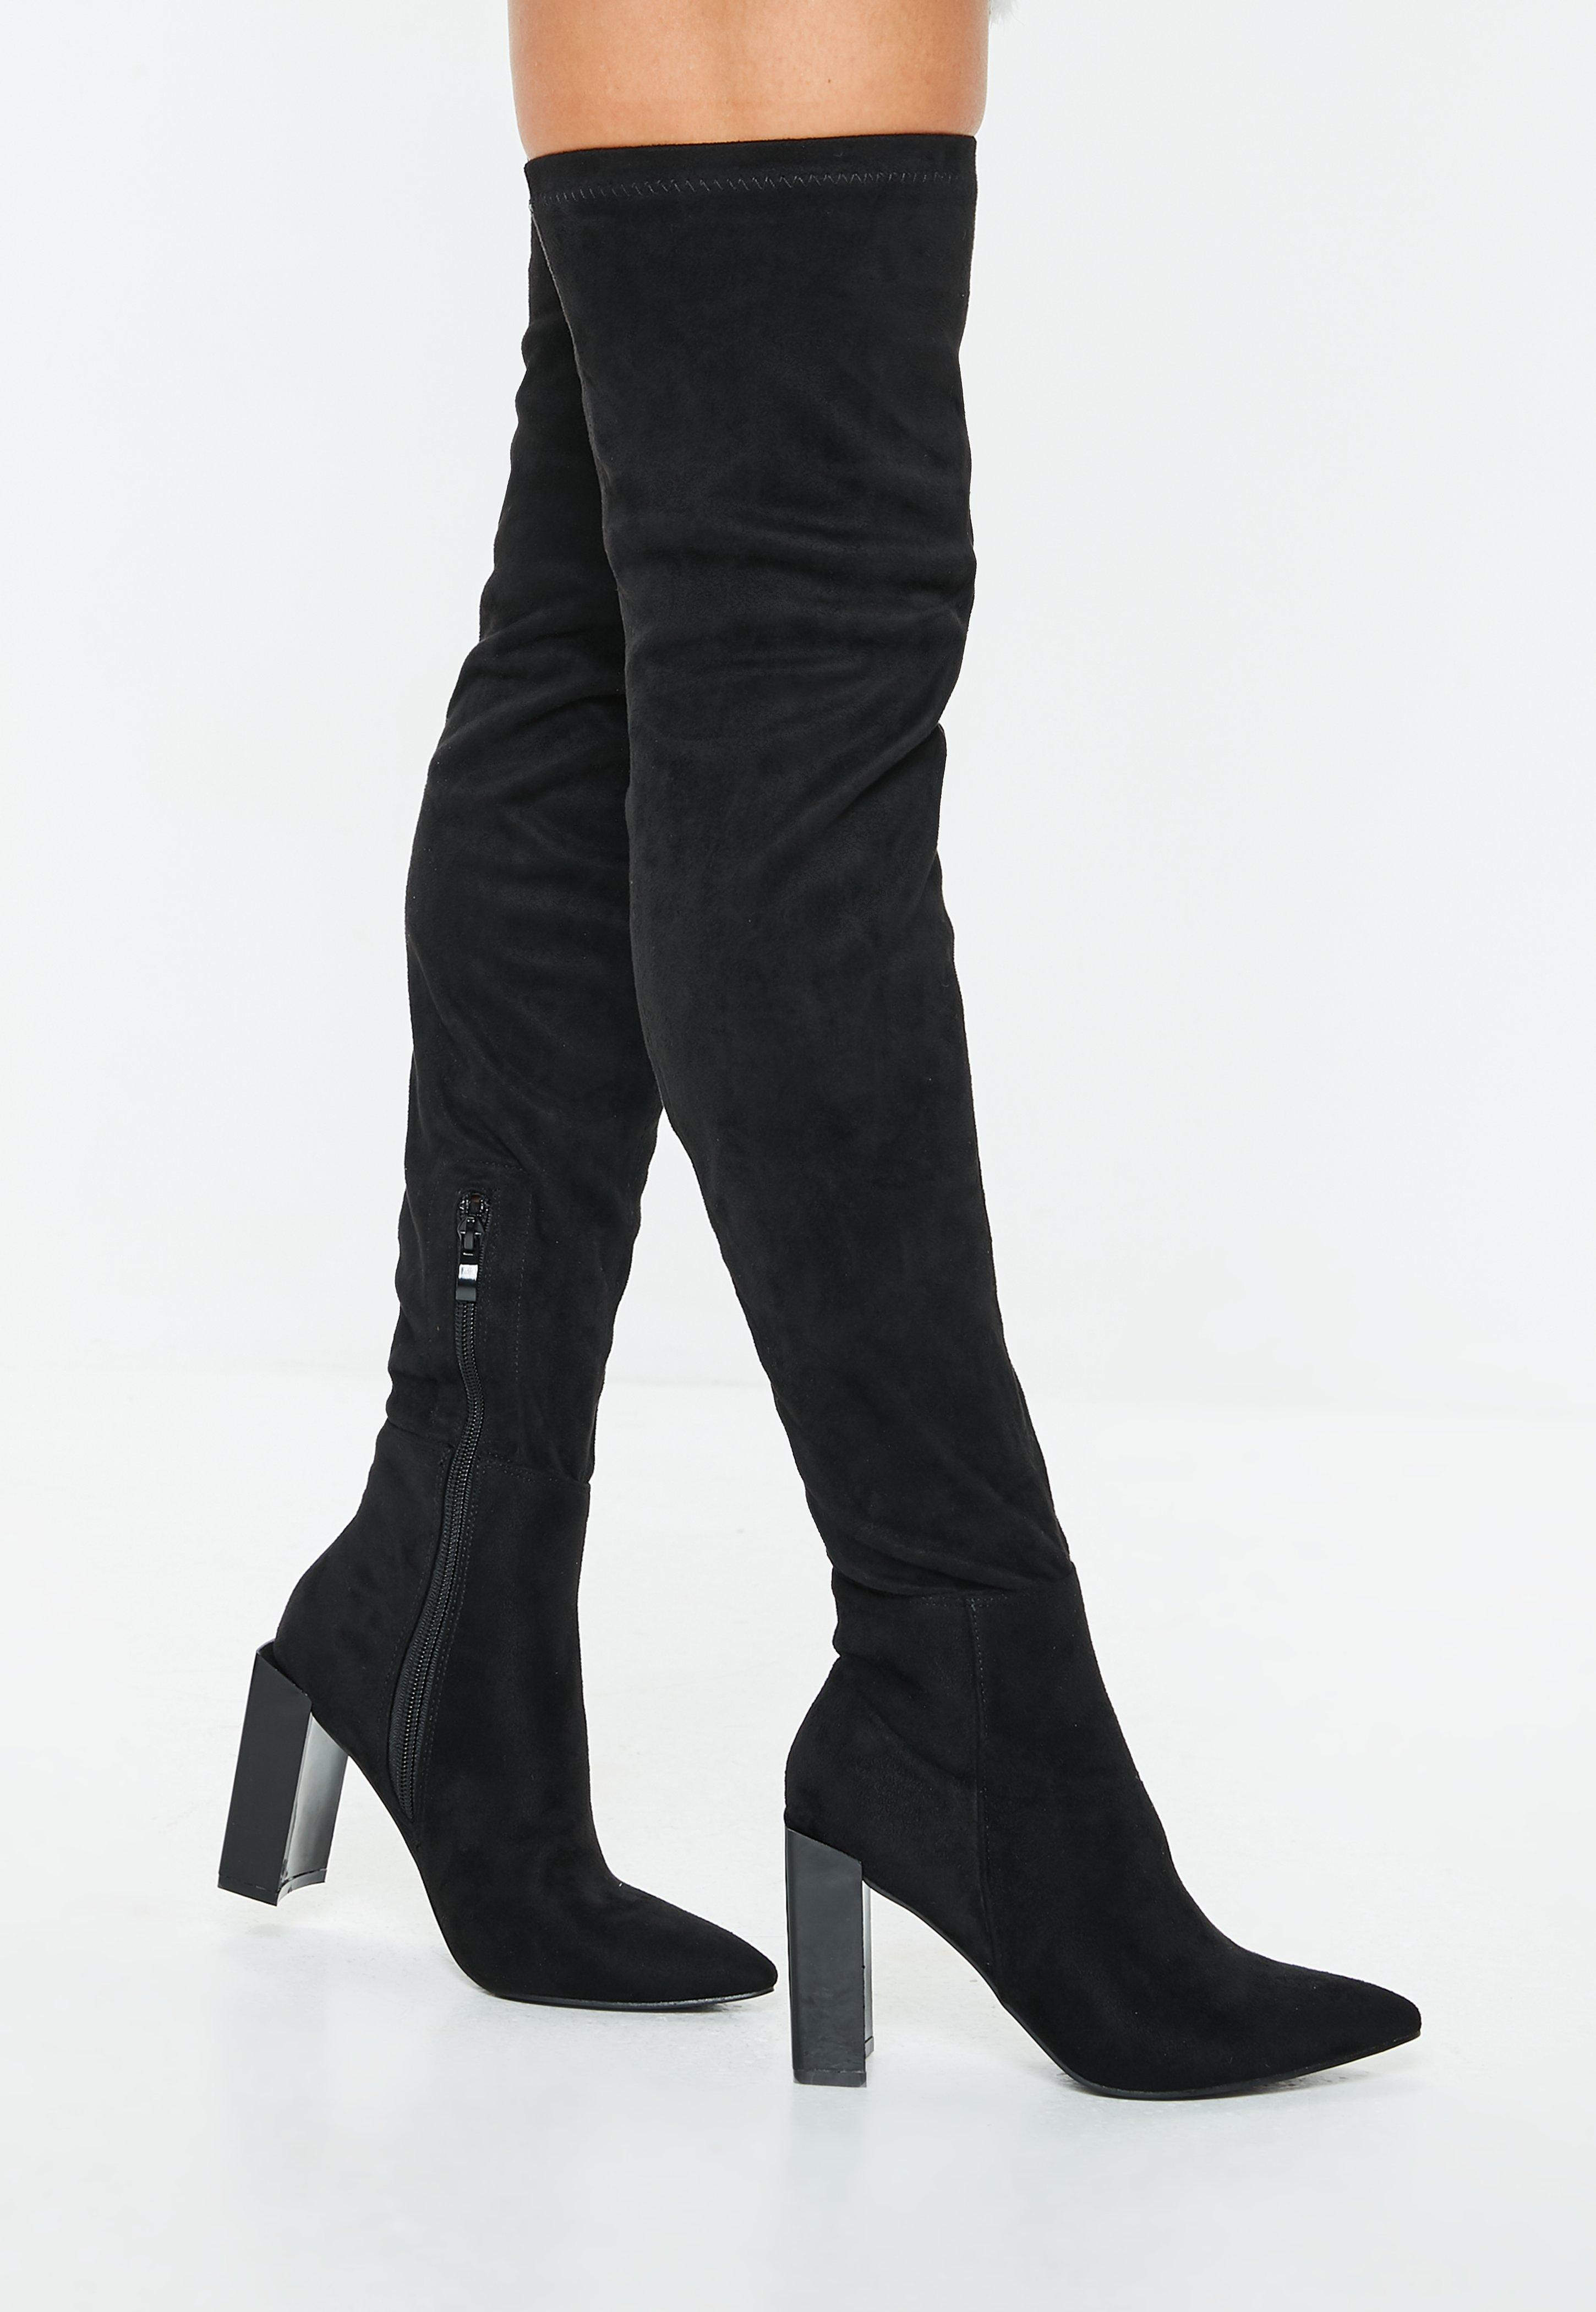 67240d36eef Thigh High Boots - Knee High Boots